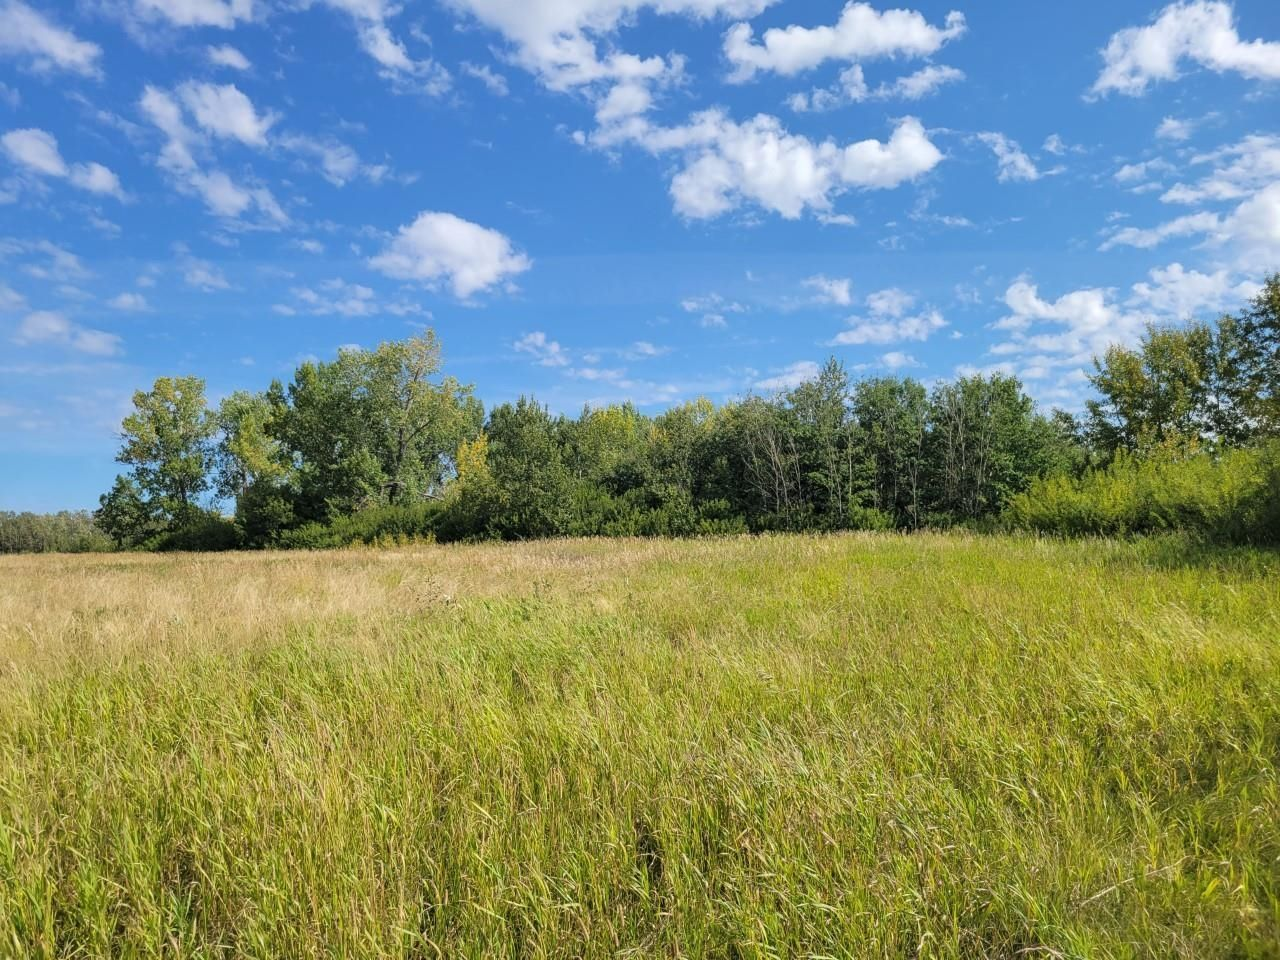 Main Photo: HWY 29 RR 175: Rural Lamont County Rural Land/Vacant Lot for sale : MLS®# E4260440